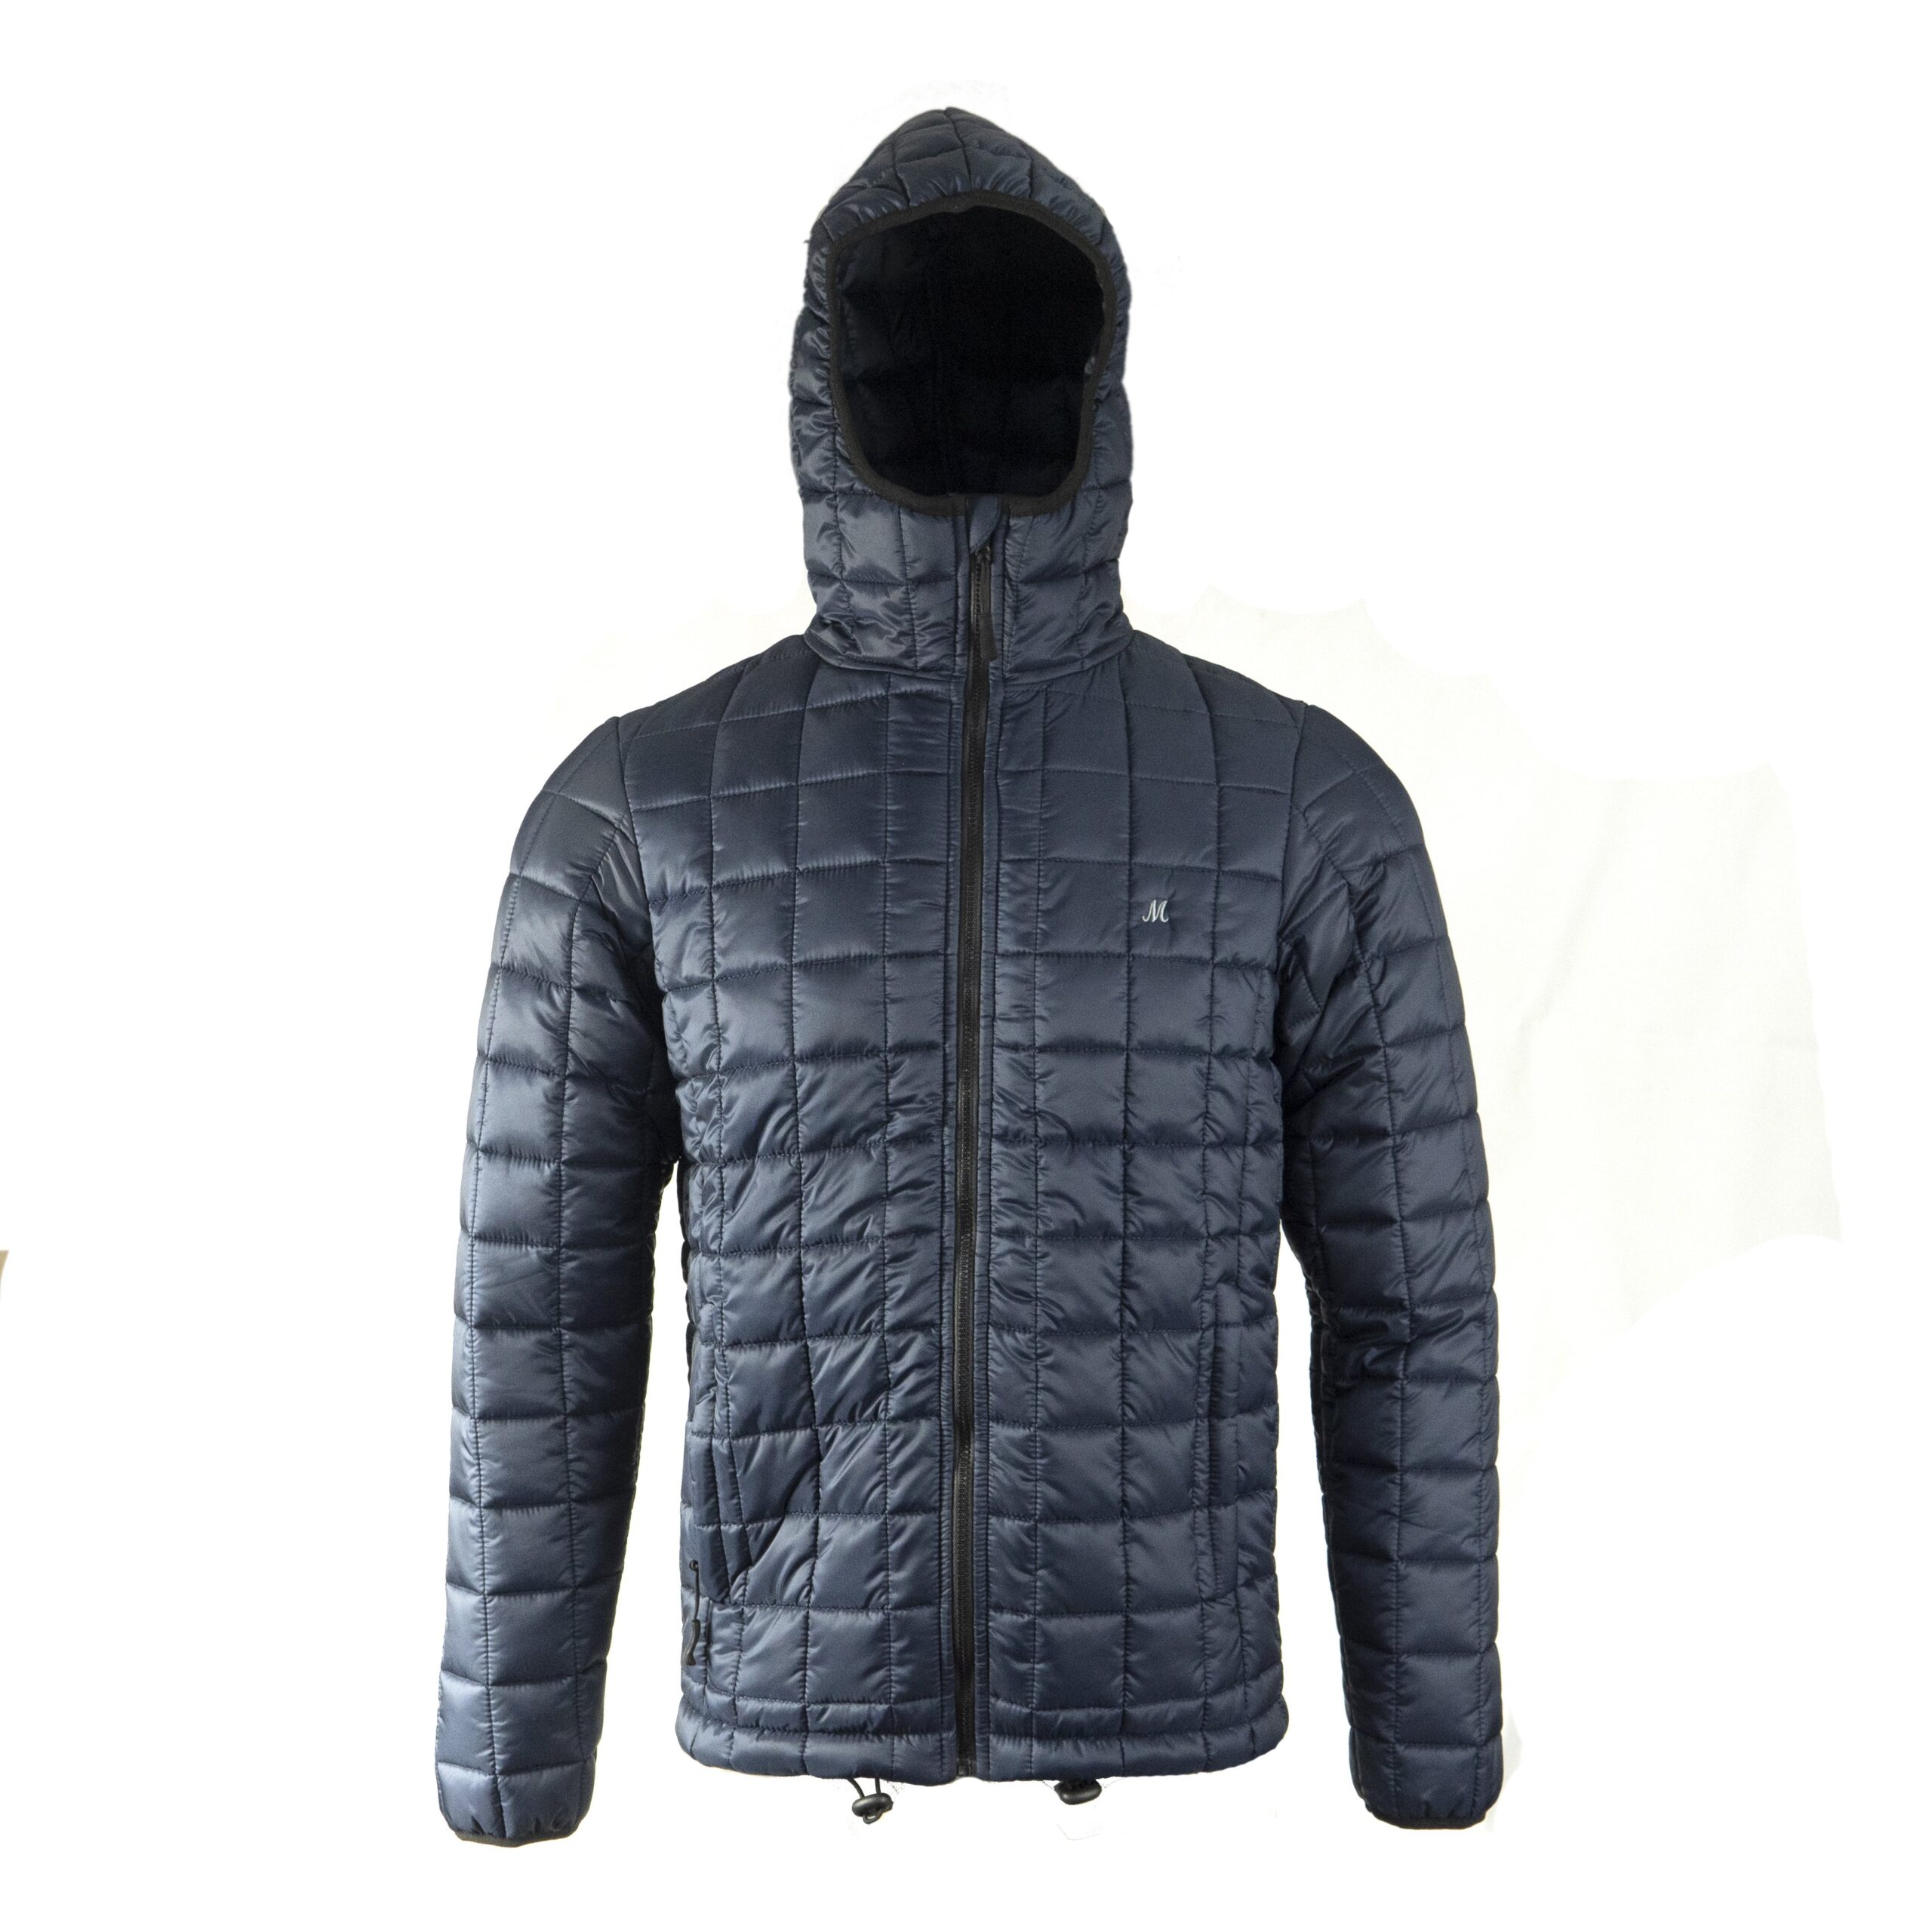 FALSTER NAVY NYLON JACKET